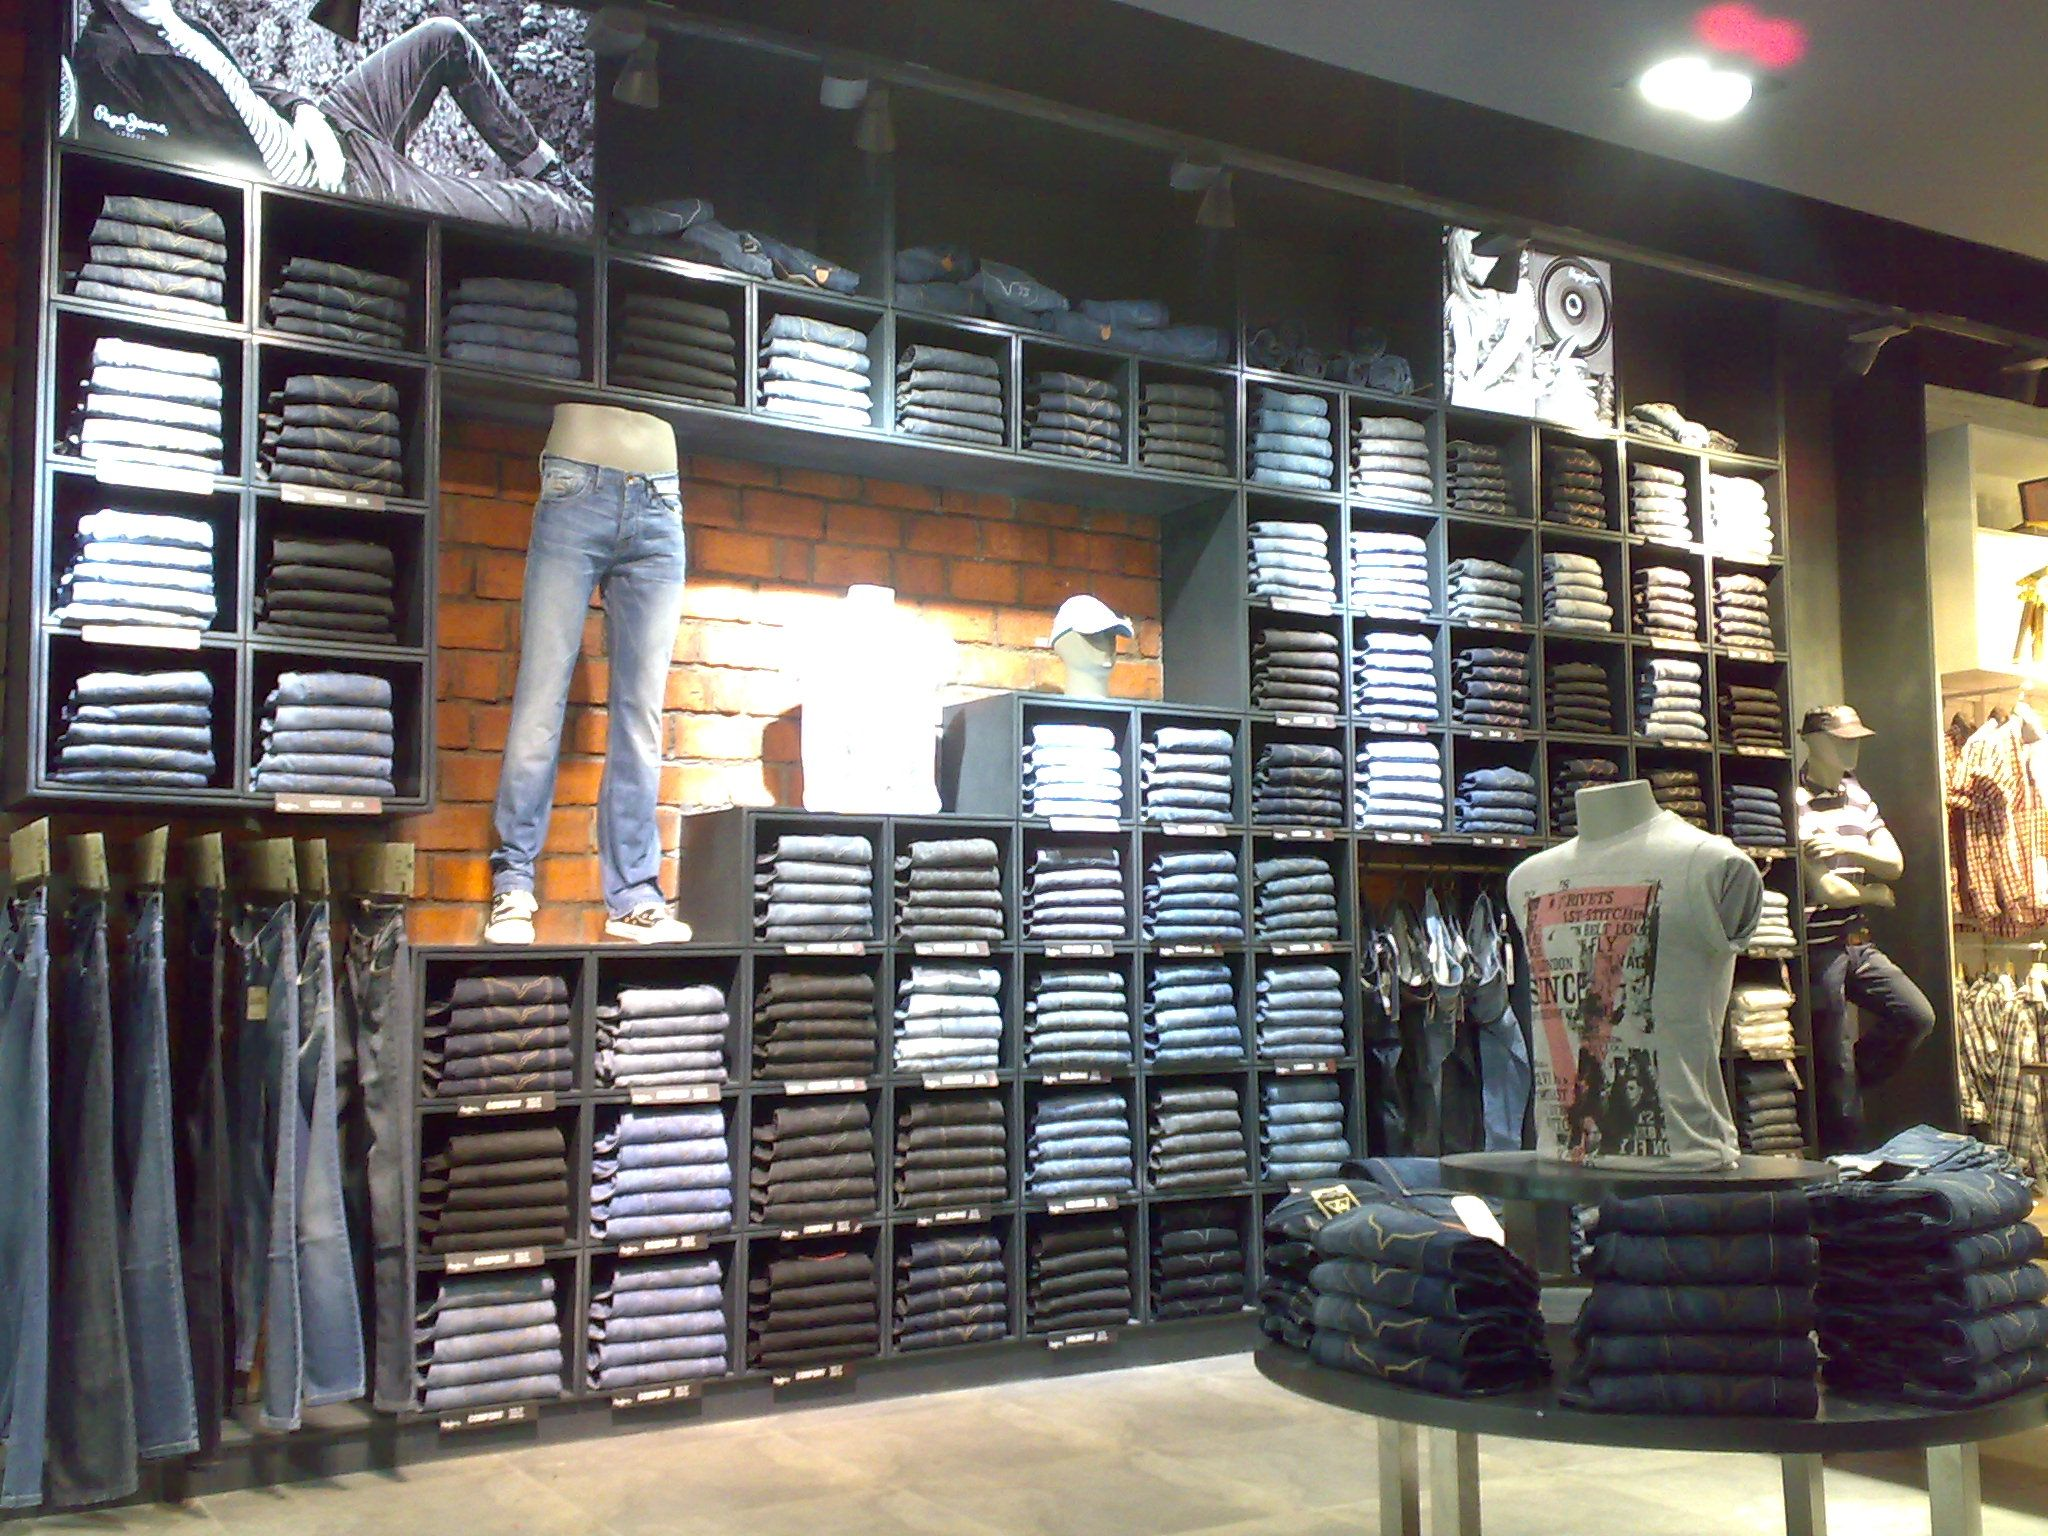 Infinity Mall, Malad, Mumbai. | Pepe Jeans Concept Stores ...